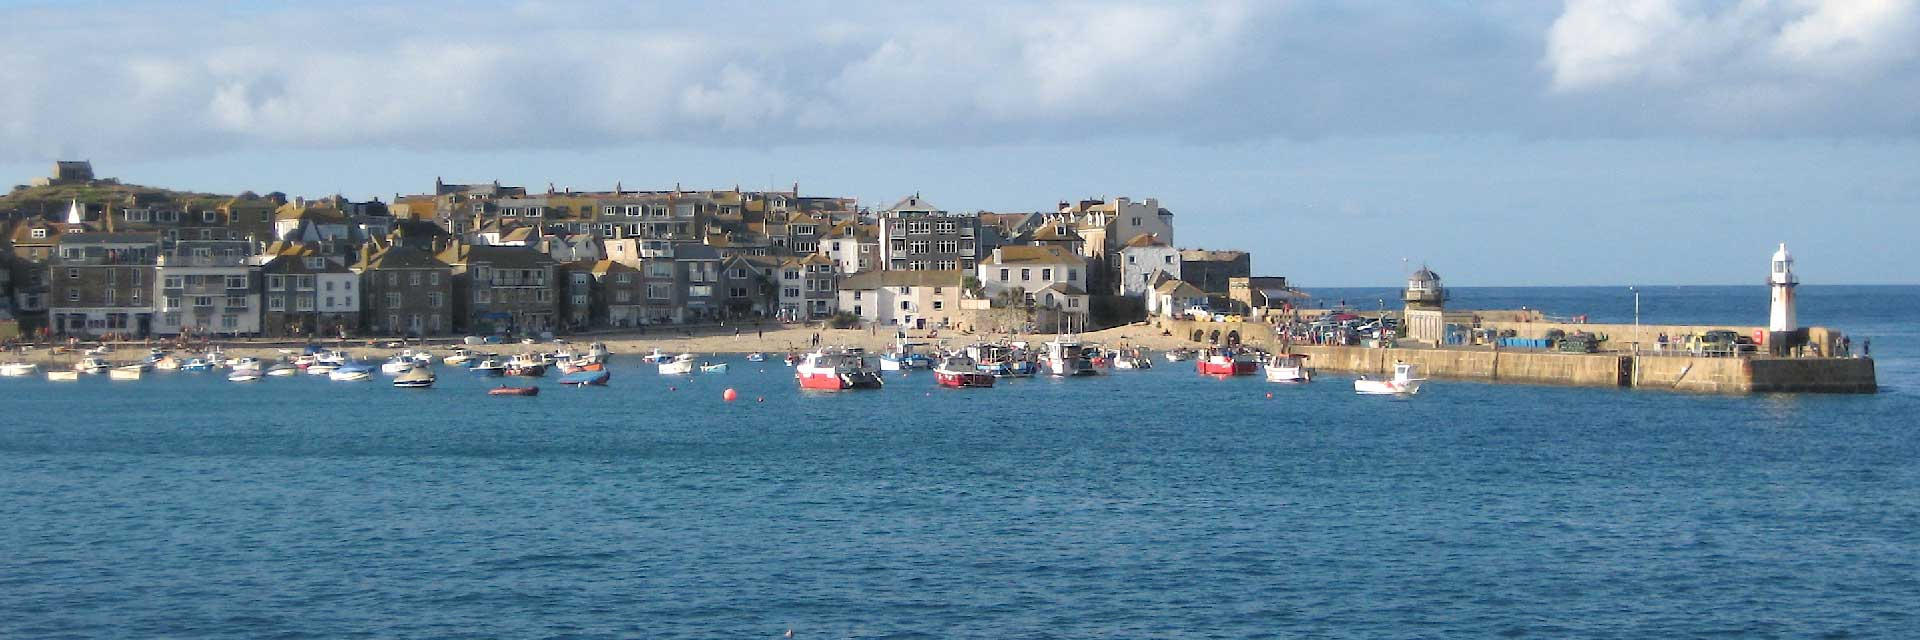 St. Ives and harbour